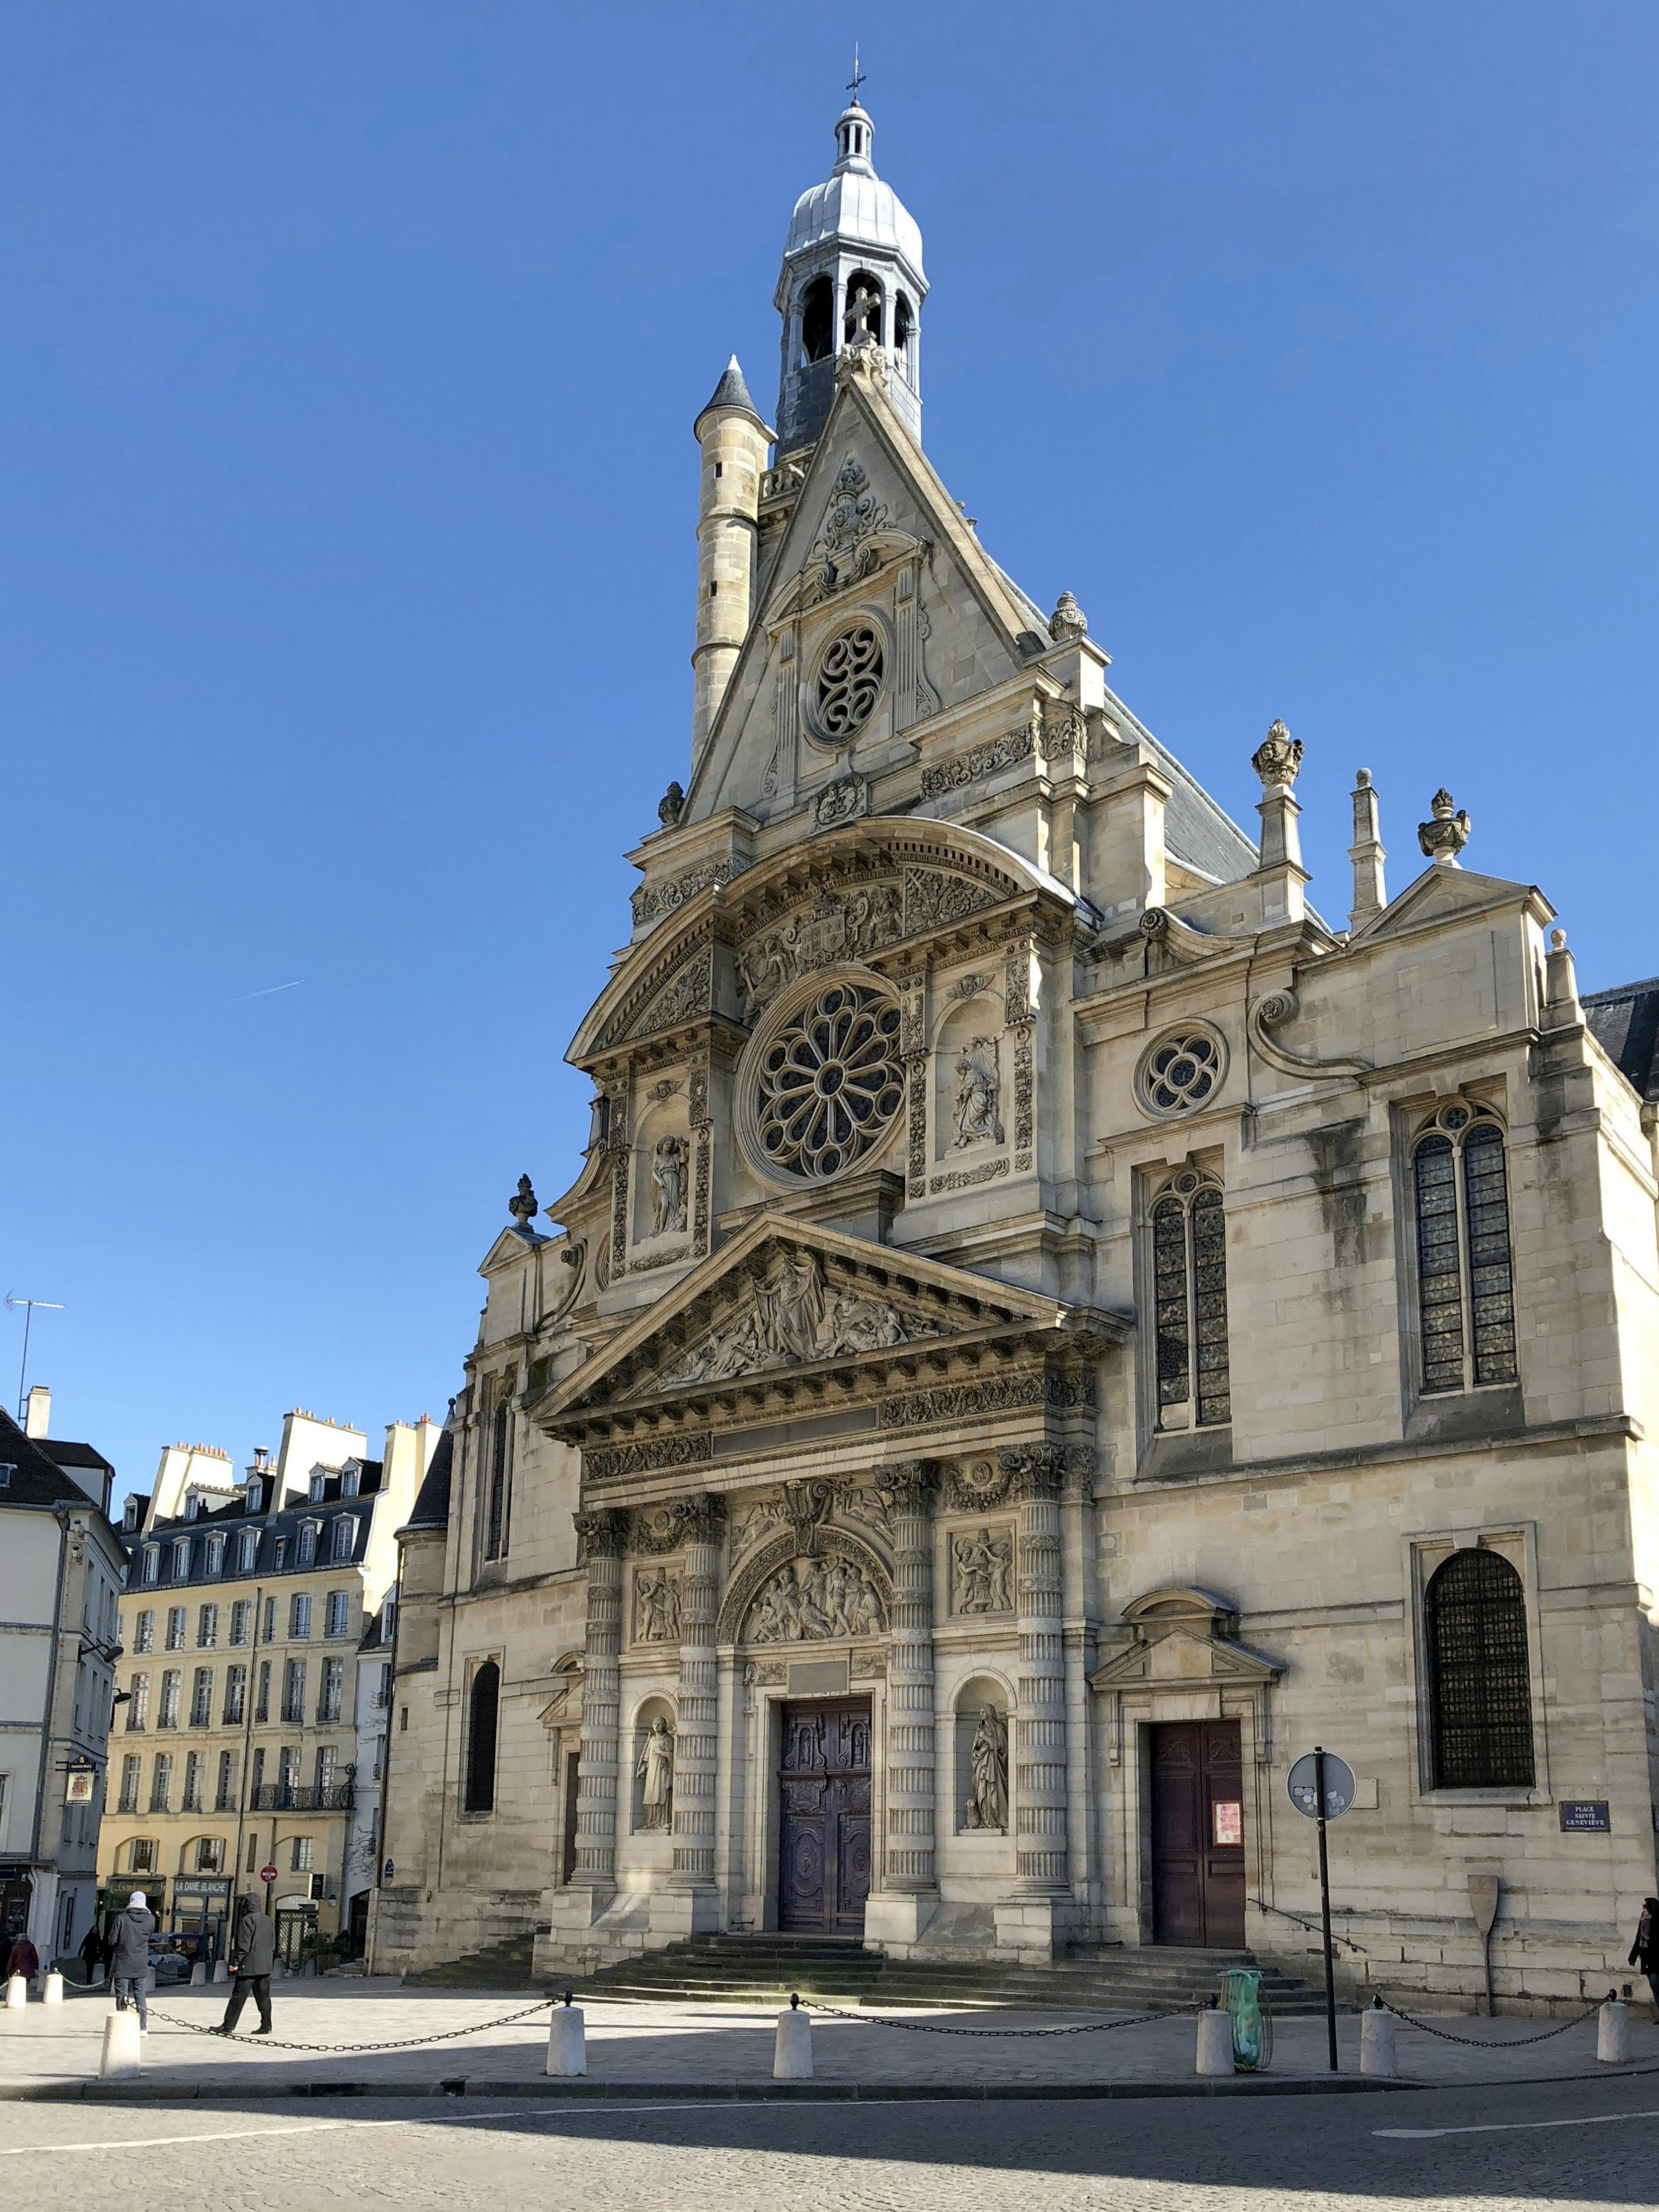 "The church is mentioned in Hemingway's  A Moveable Feast:  ""I walked past the Lycée Henri Quatre and the ancient church of St-Etienne-du-Mont and the windswept Place du Panthéon."" Seems like Woody Allen did his homework!"